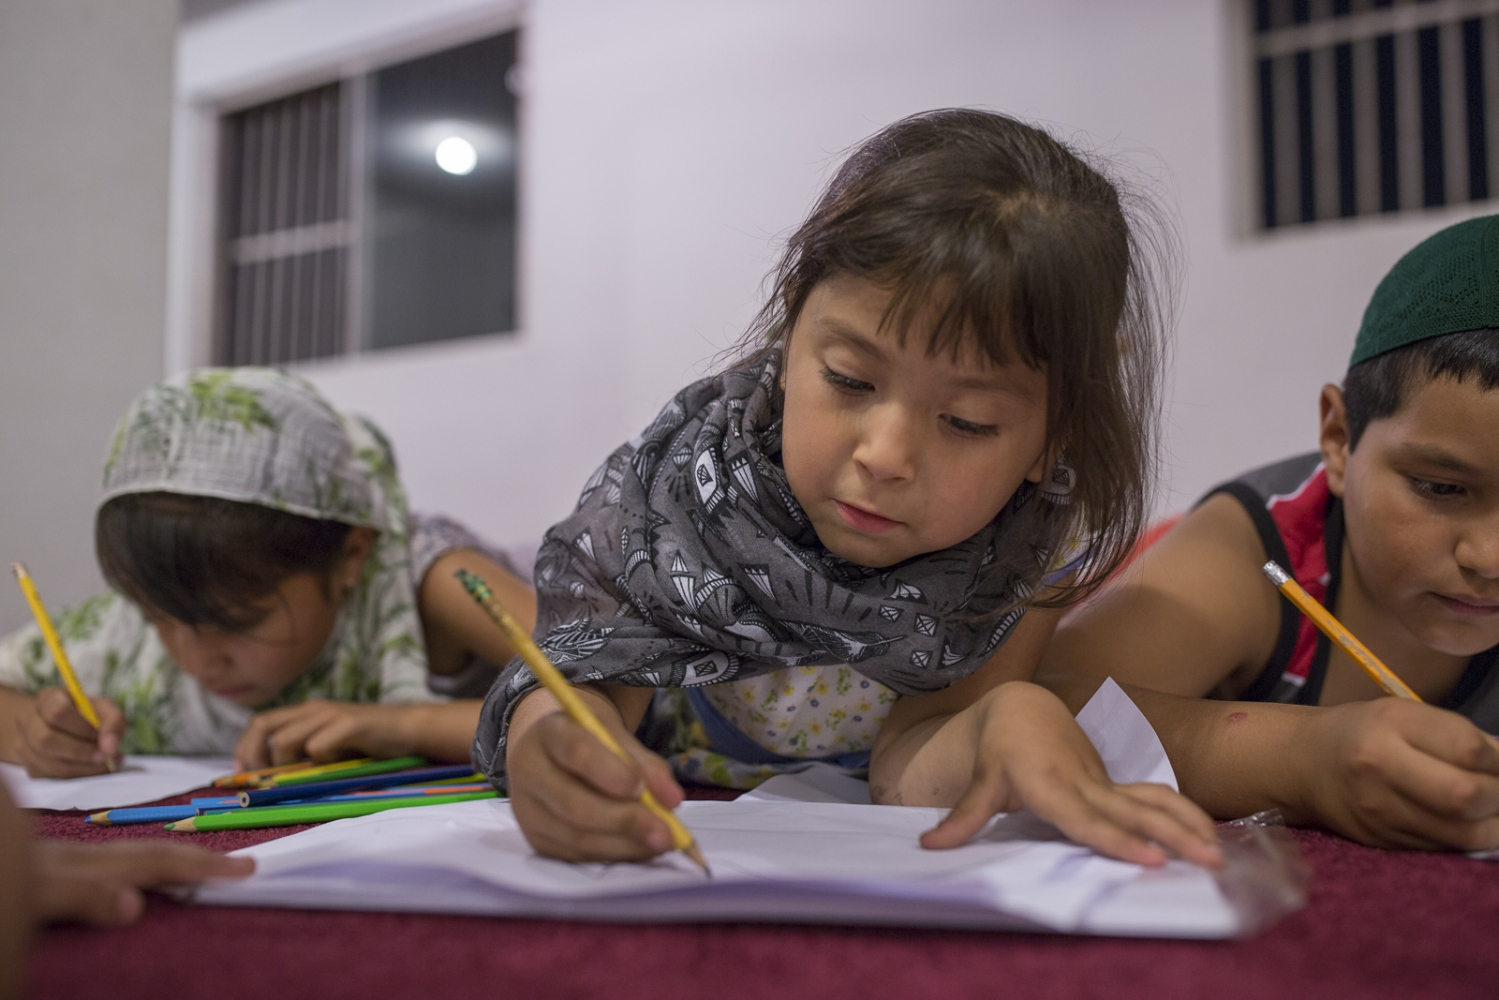 Michelle Garaviz and her sister Fernanda and some other kids draw and play at the Masjid Omar, in Playas de Tijuana, Mexico.